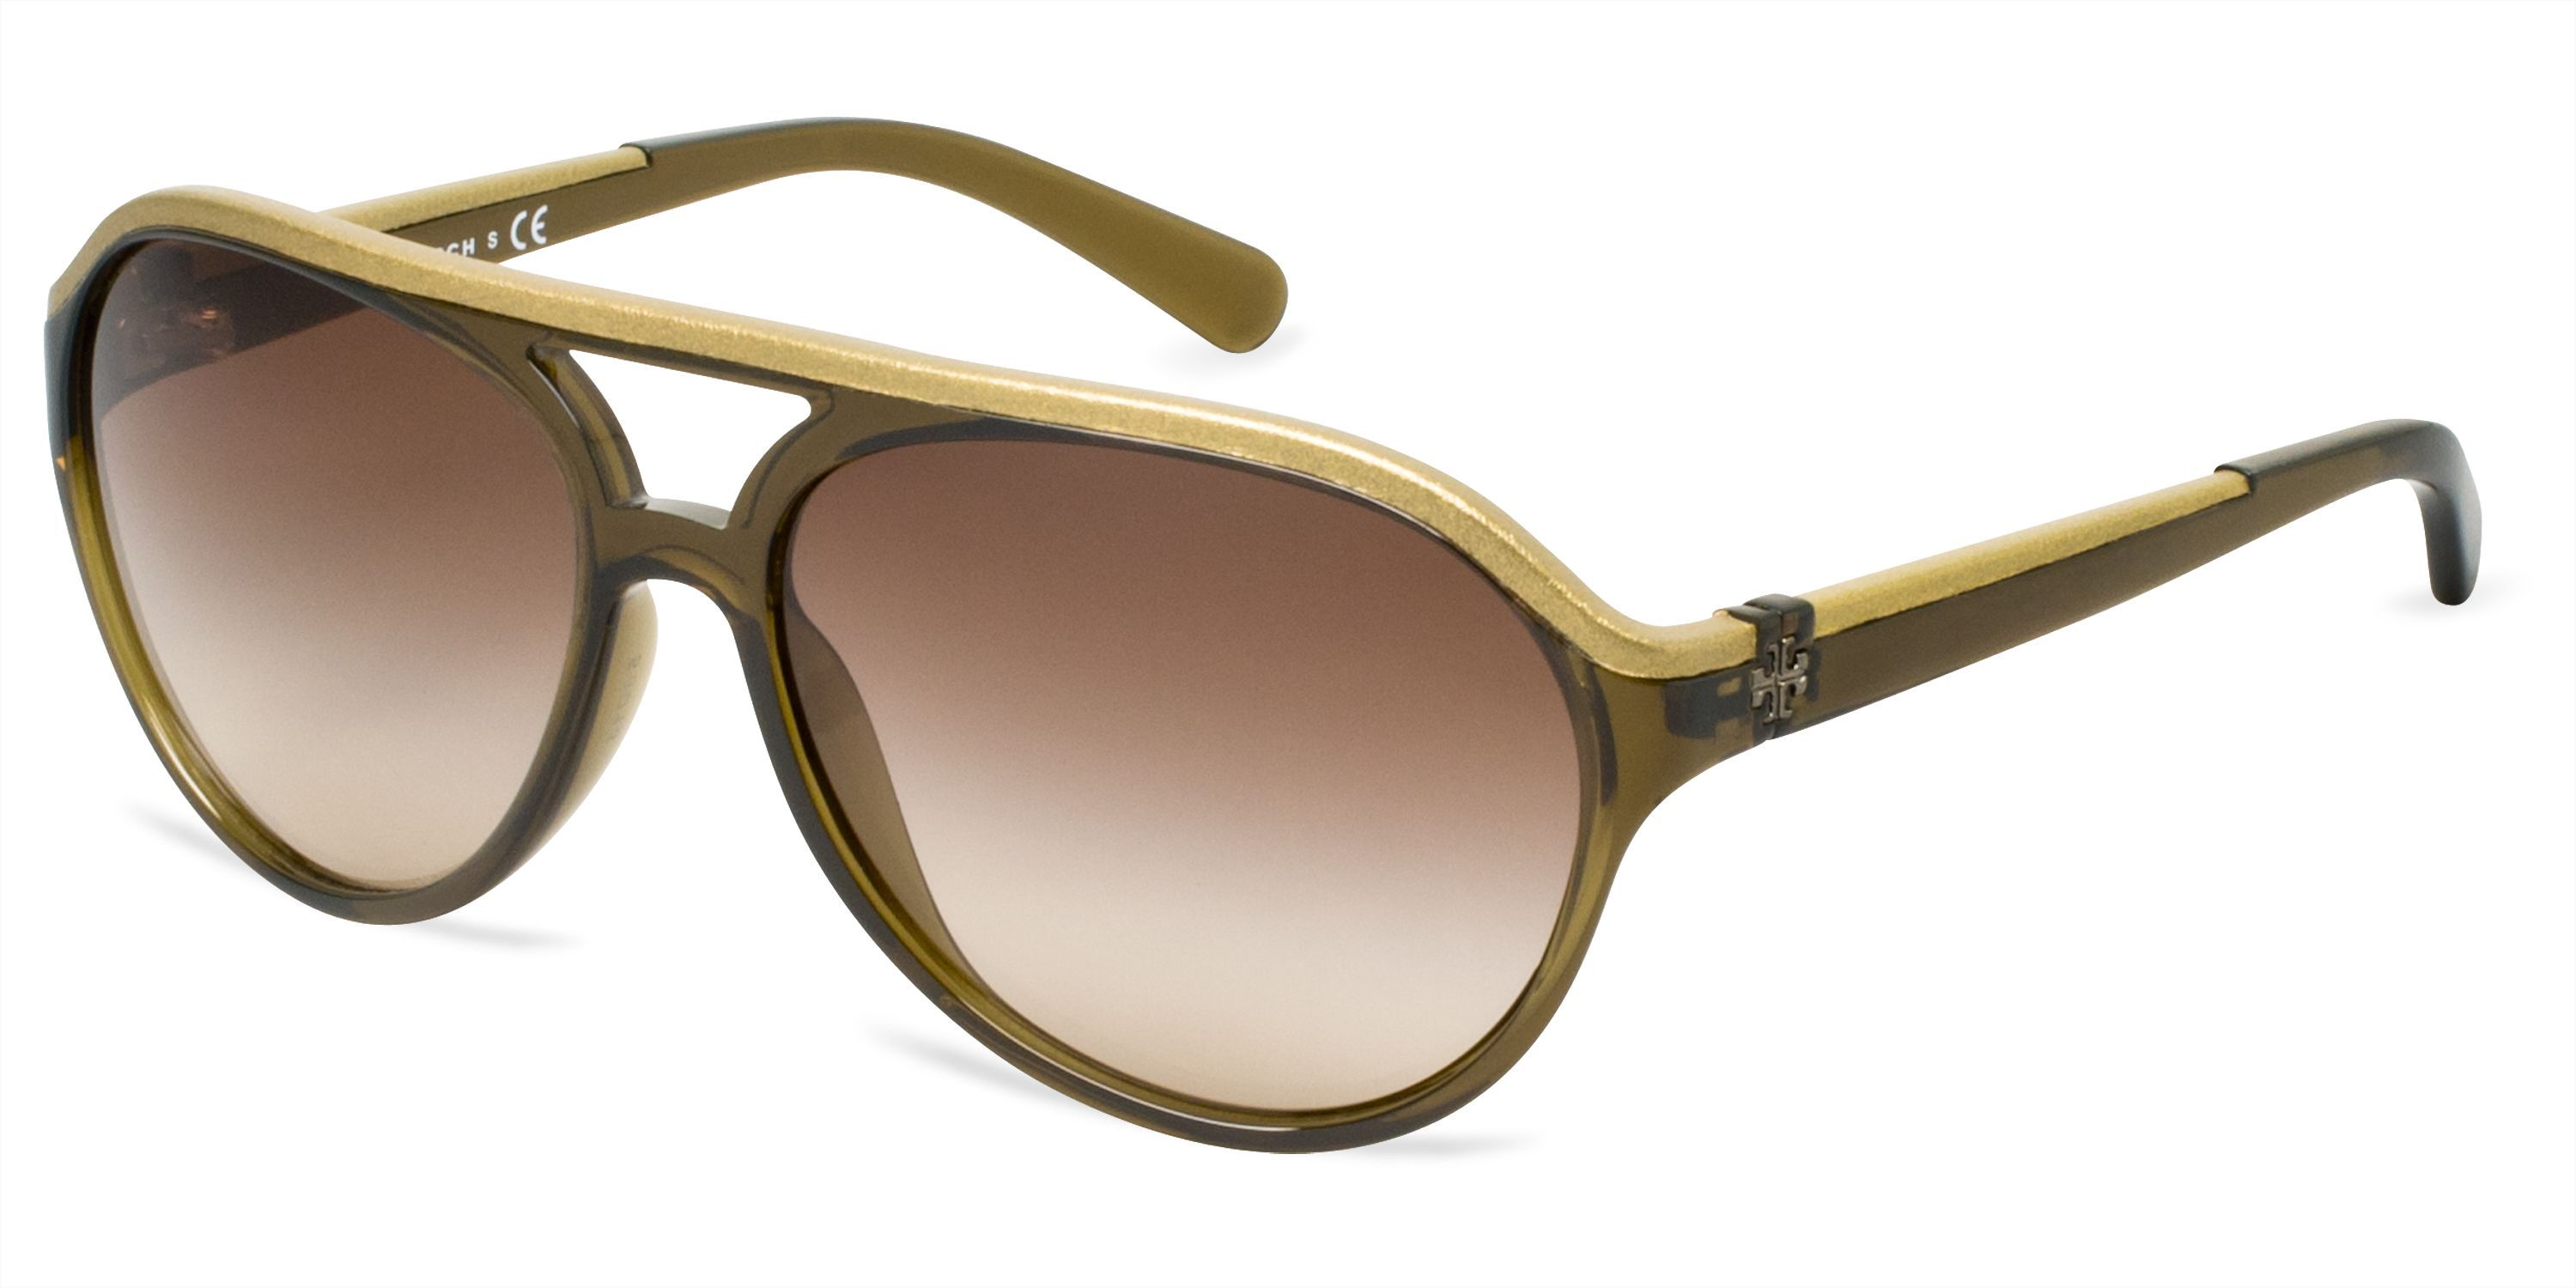 TORY BURCH TY9018Q - Repin your favorite frame and win a USD300 ...